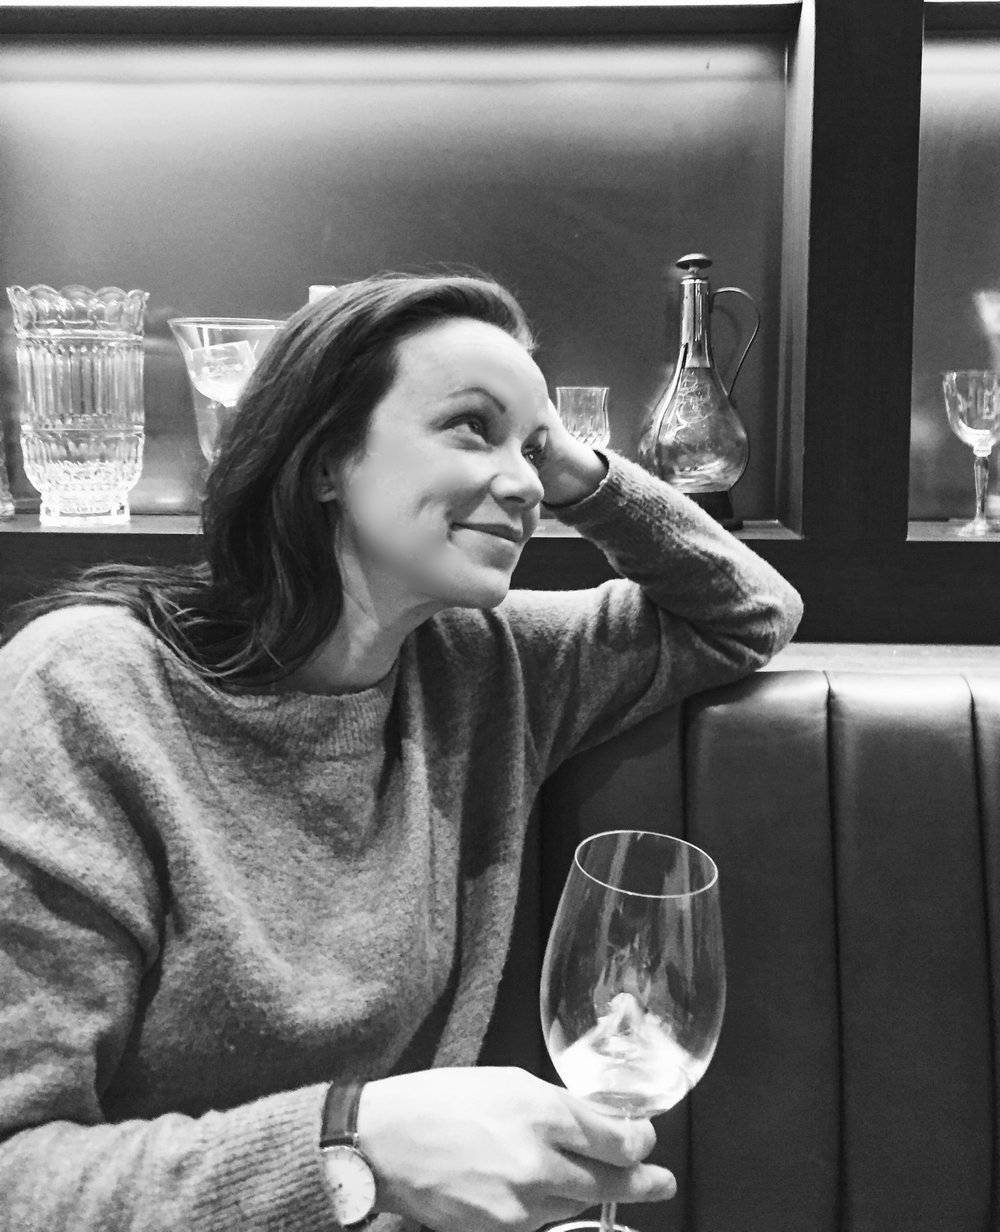 Caitlin MacIvor  - Drake 150 + Jacob's & Co, Sommelier, Server & Wine Educator